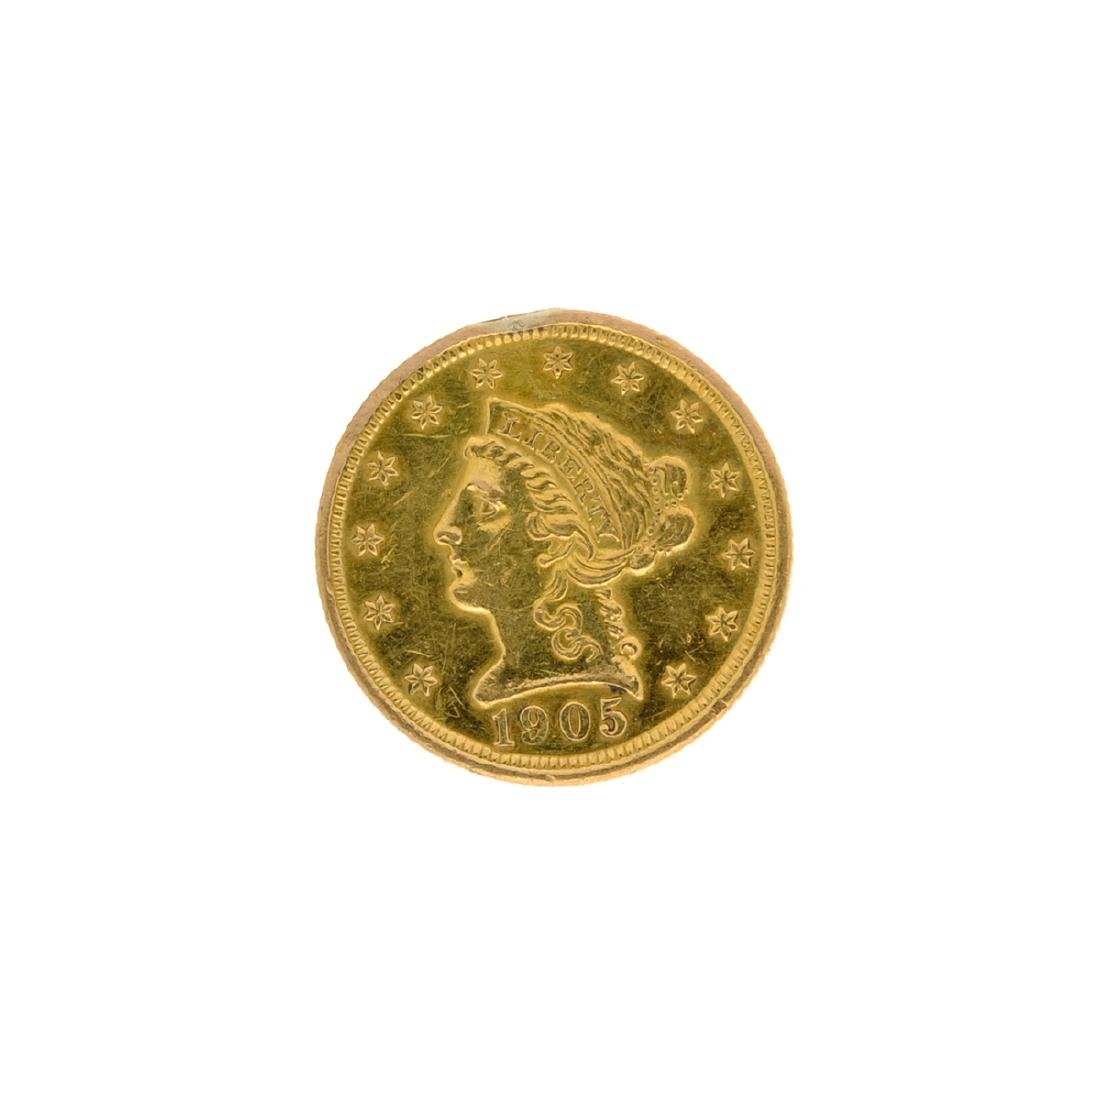 1905 $2.50 U.S. Liberty Head Gold Coin